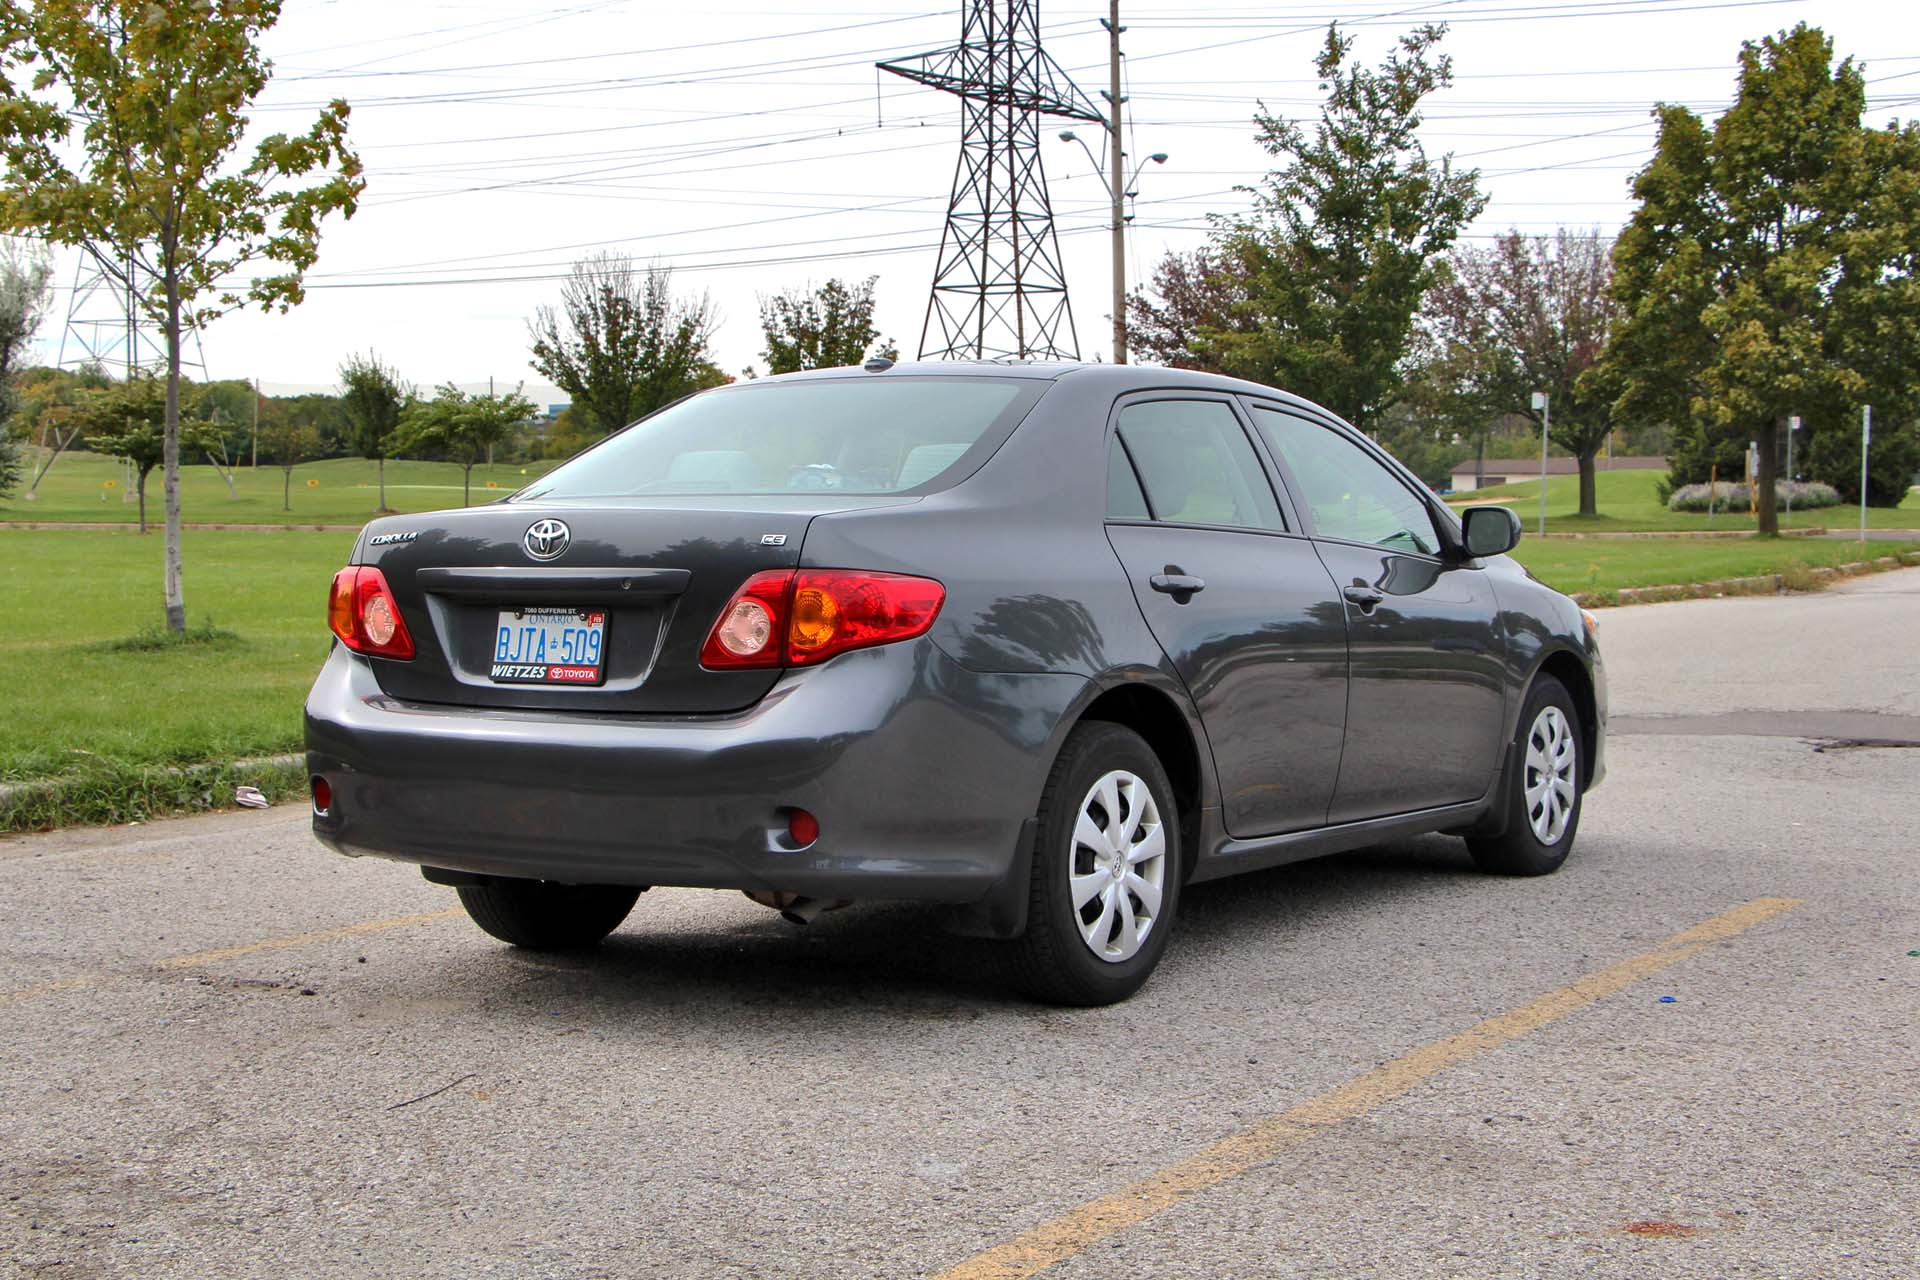 toyota corolla photos prices reviews specs the car. Black Bedroom Furniture Sets. Home Design Ideas